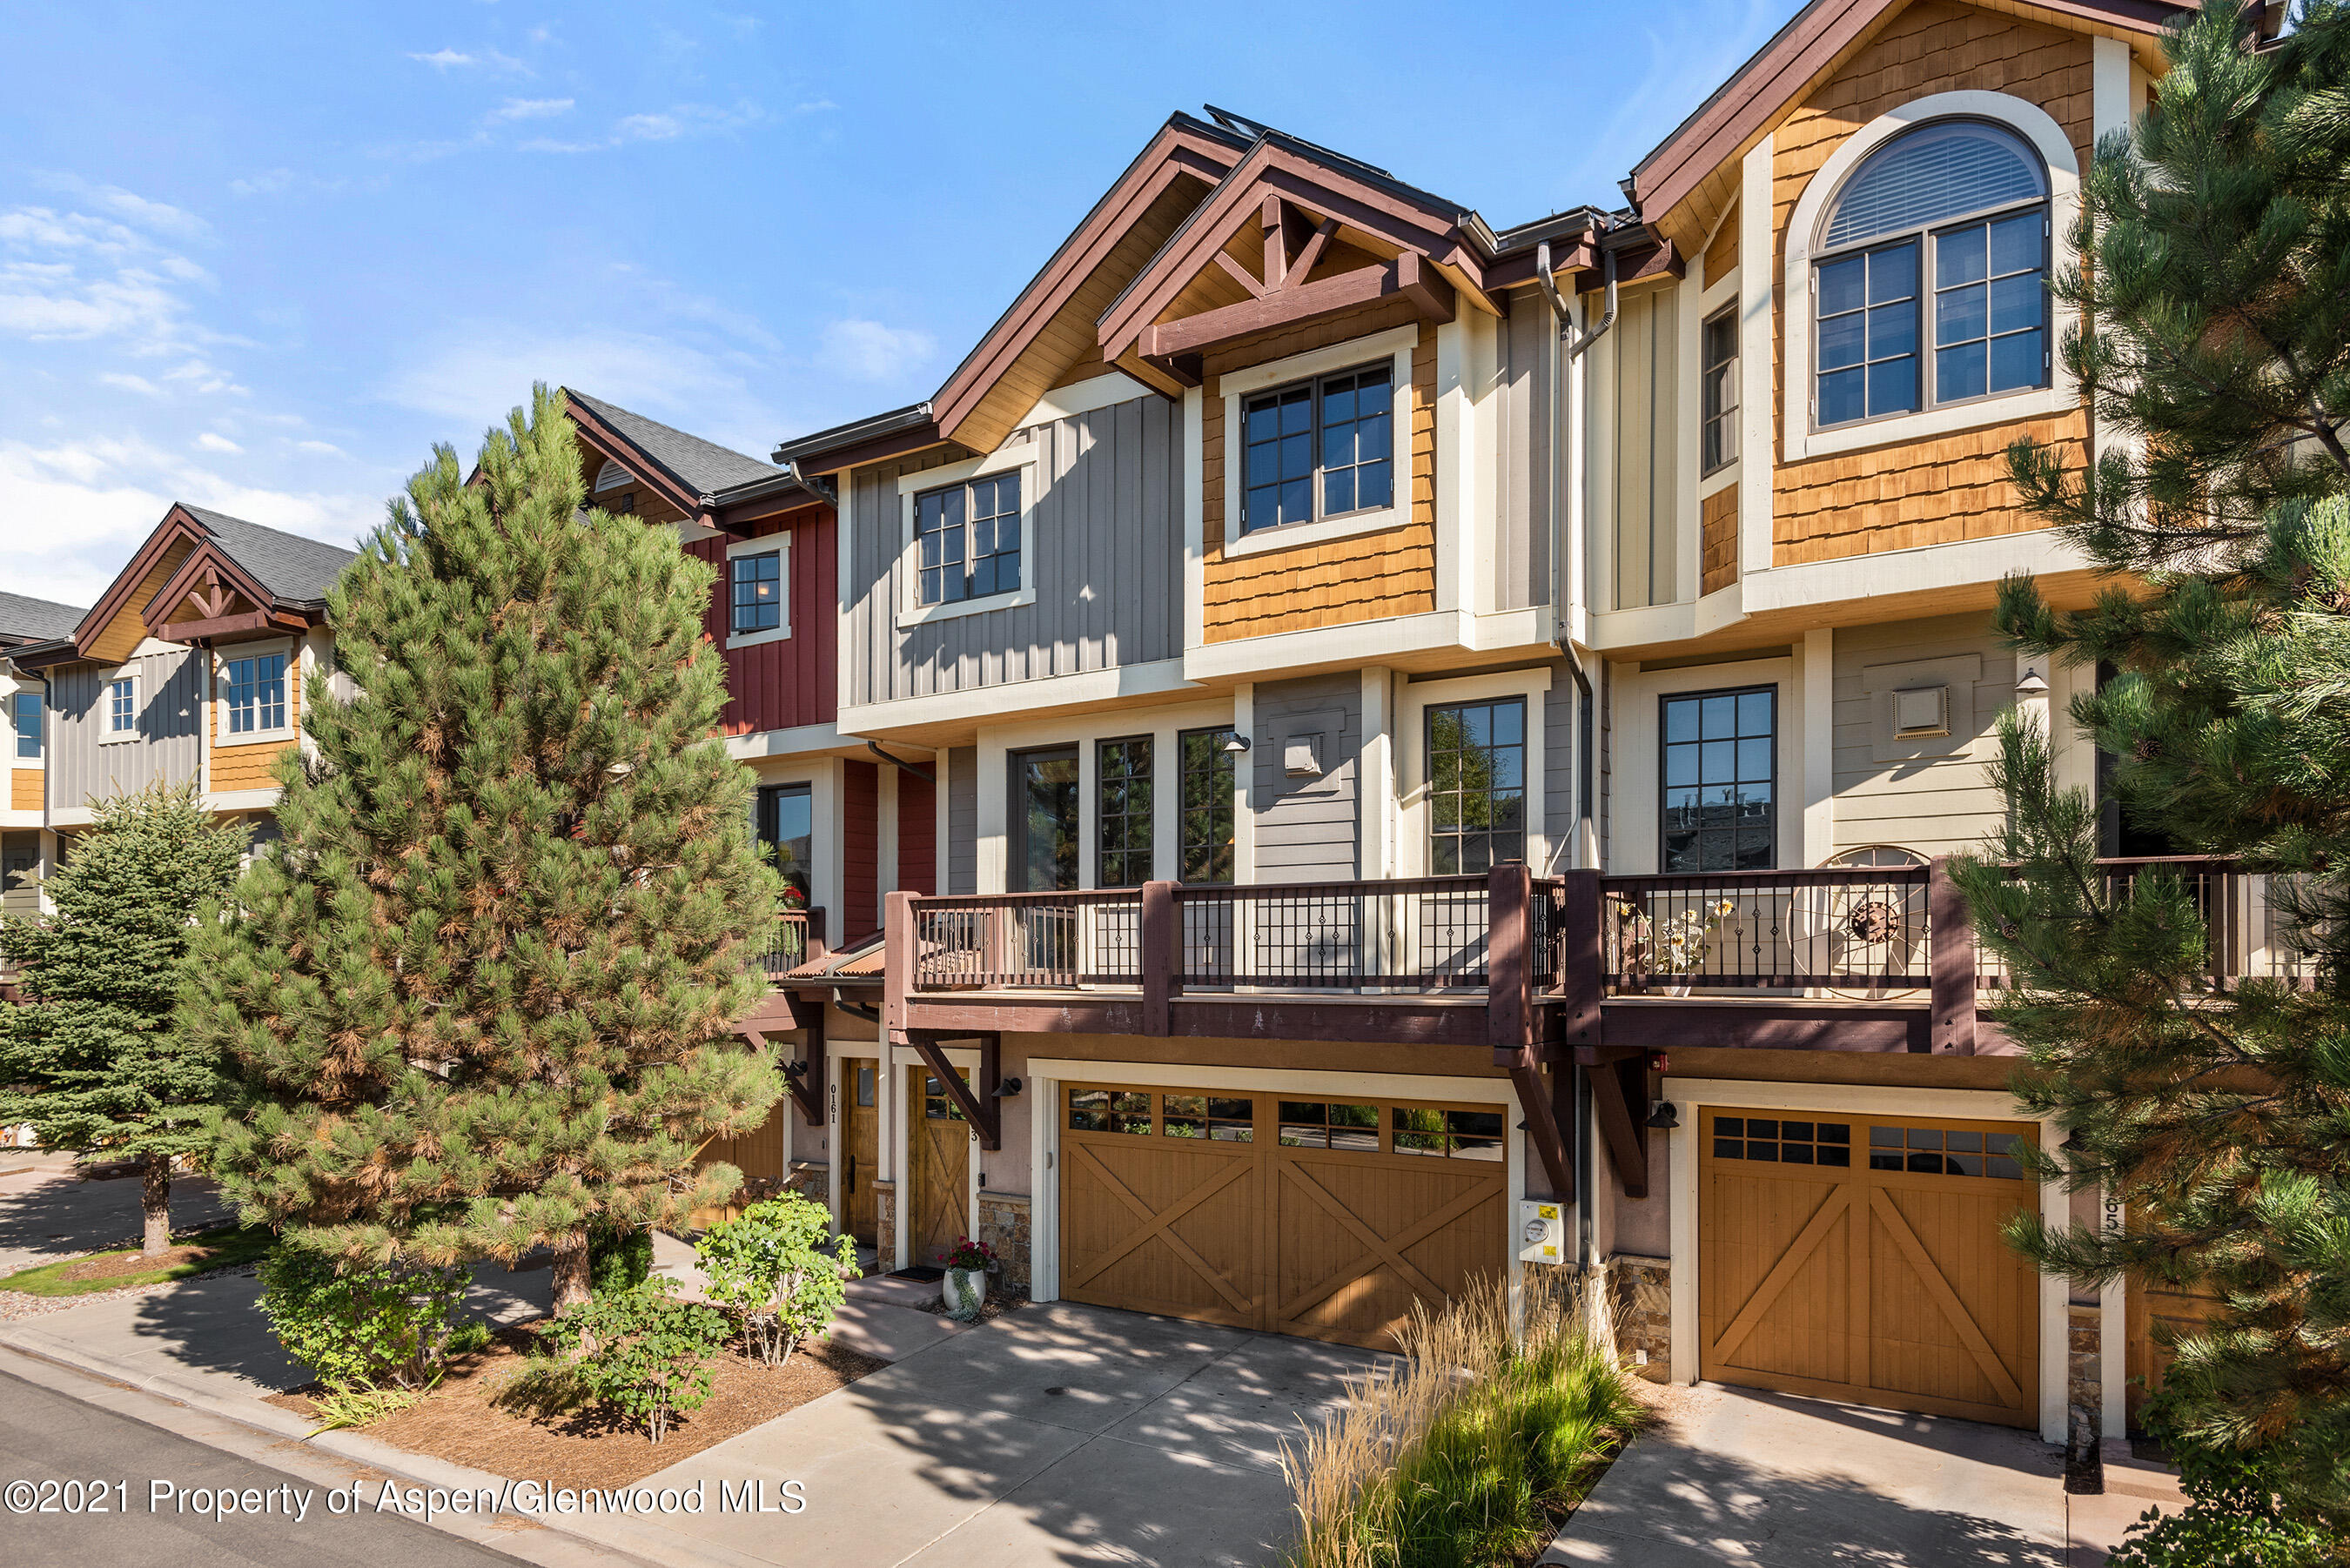 This well-maintained townhome is within walking distance from all the desirable mid-valley amenities:  shopping, dining, theaters, and Crown Mountain Park.  The main floor is ideal for tranquillity or entertainment with its open floor plan, kitchen island, back patio, fireplace, half bathroom, and peek-a-boo view of Mount Sopris.  Three bedrooms are located upstairs with two full bathrooms.  Additional features and upgrades in the dwelling include solar panels, wiring for an electric car charger, central air conditioning, a heated two-car oversized garage with abundant storage, and a garage sink. If you're looking for your permanent abode or a lock and leave, this is the perfect residence.